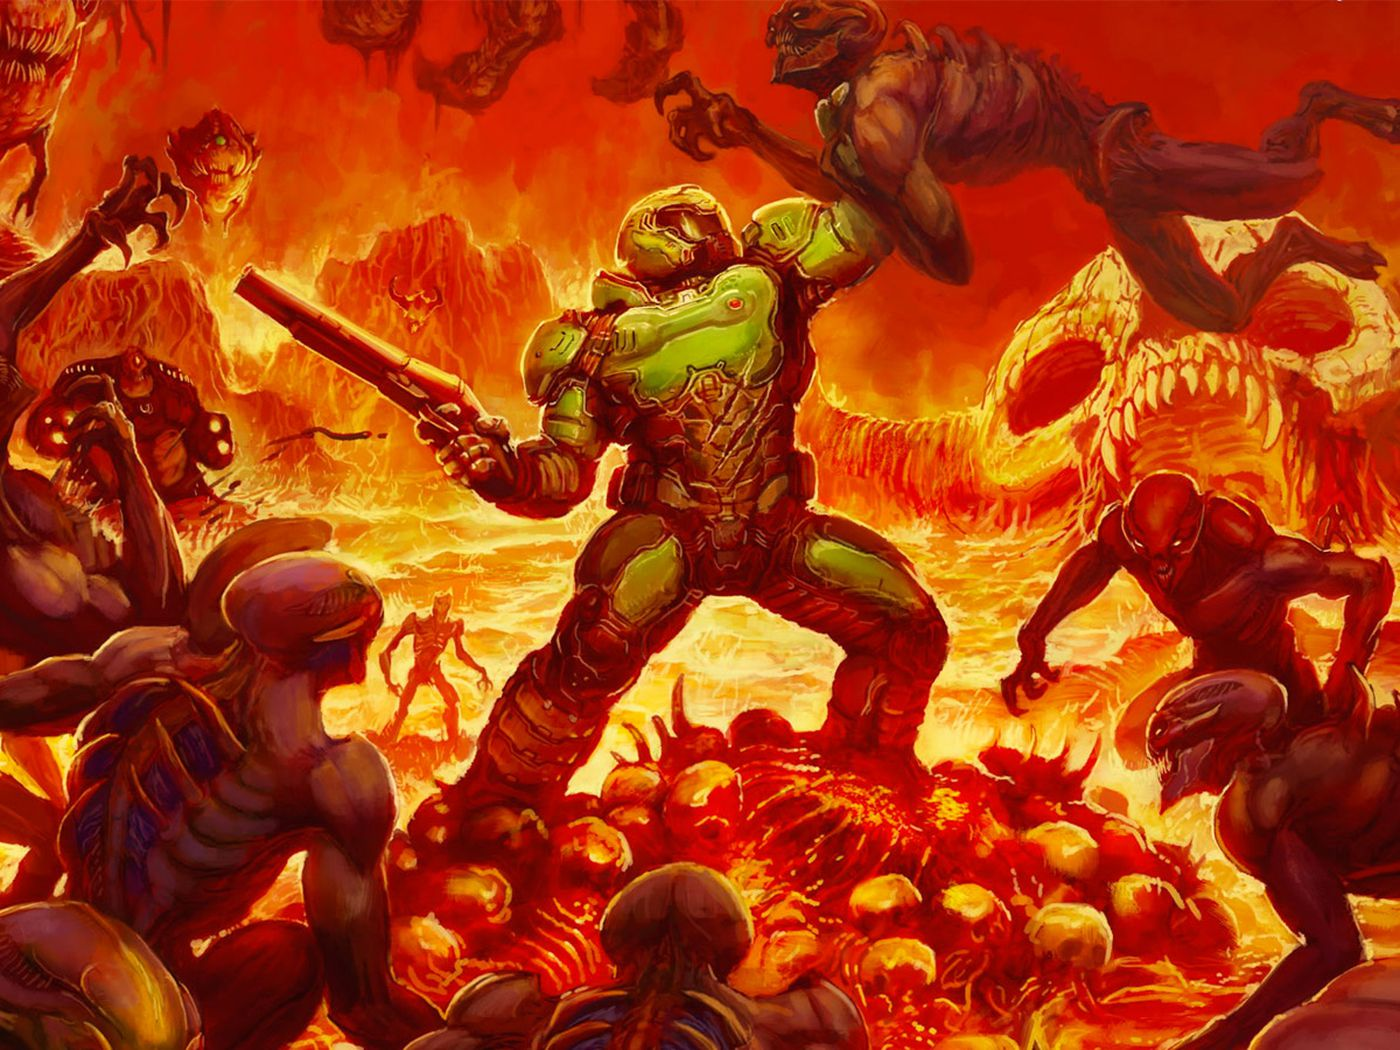 The New Doom Is Getting Alternate Box Art That Looks Way Better